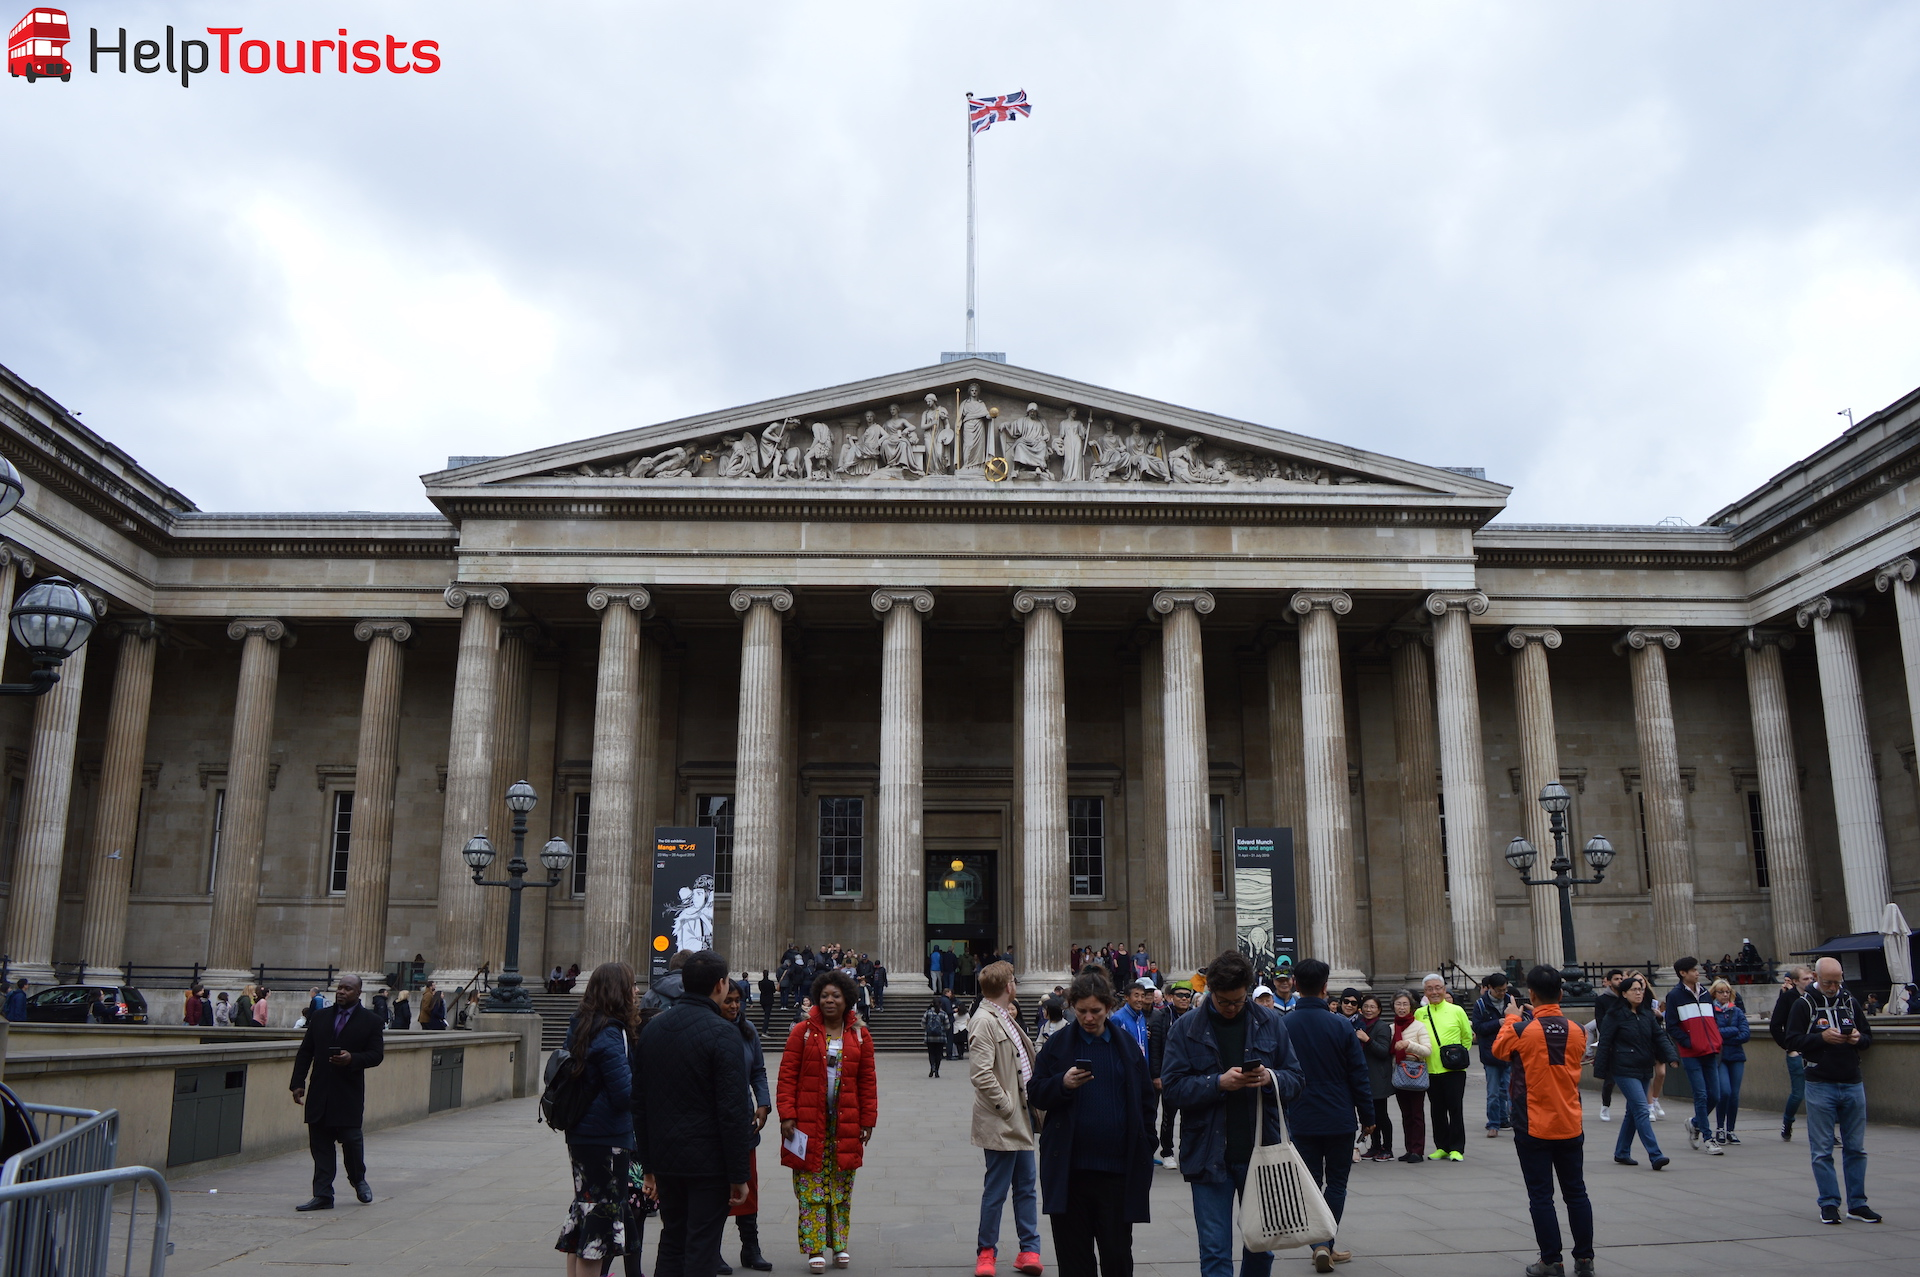 British Museum in London Tickets